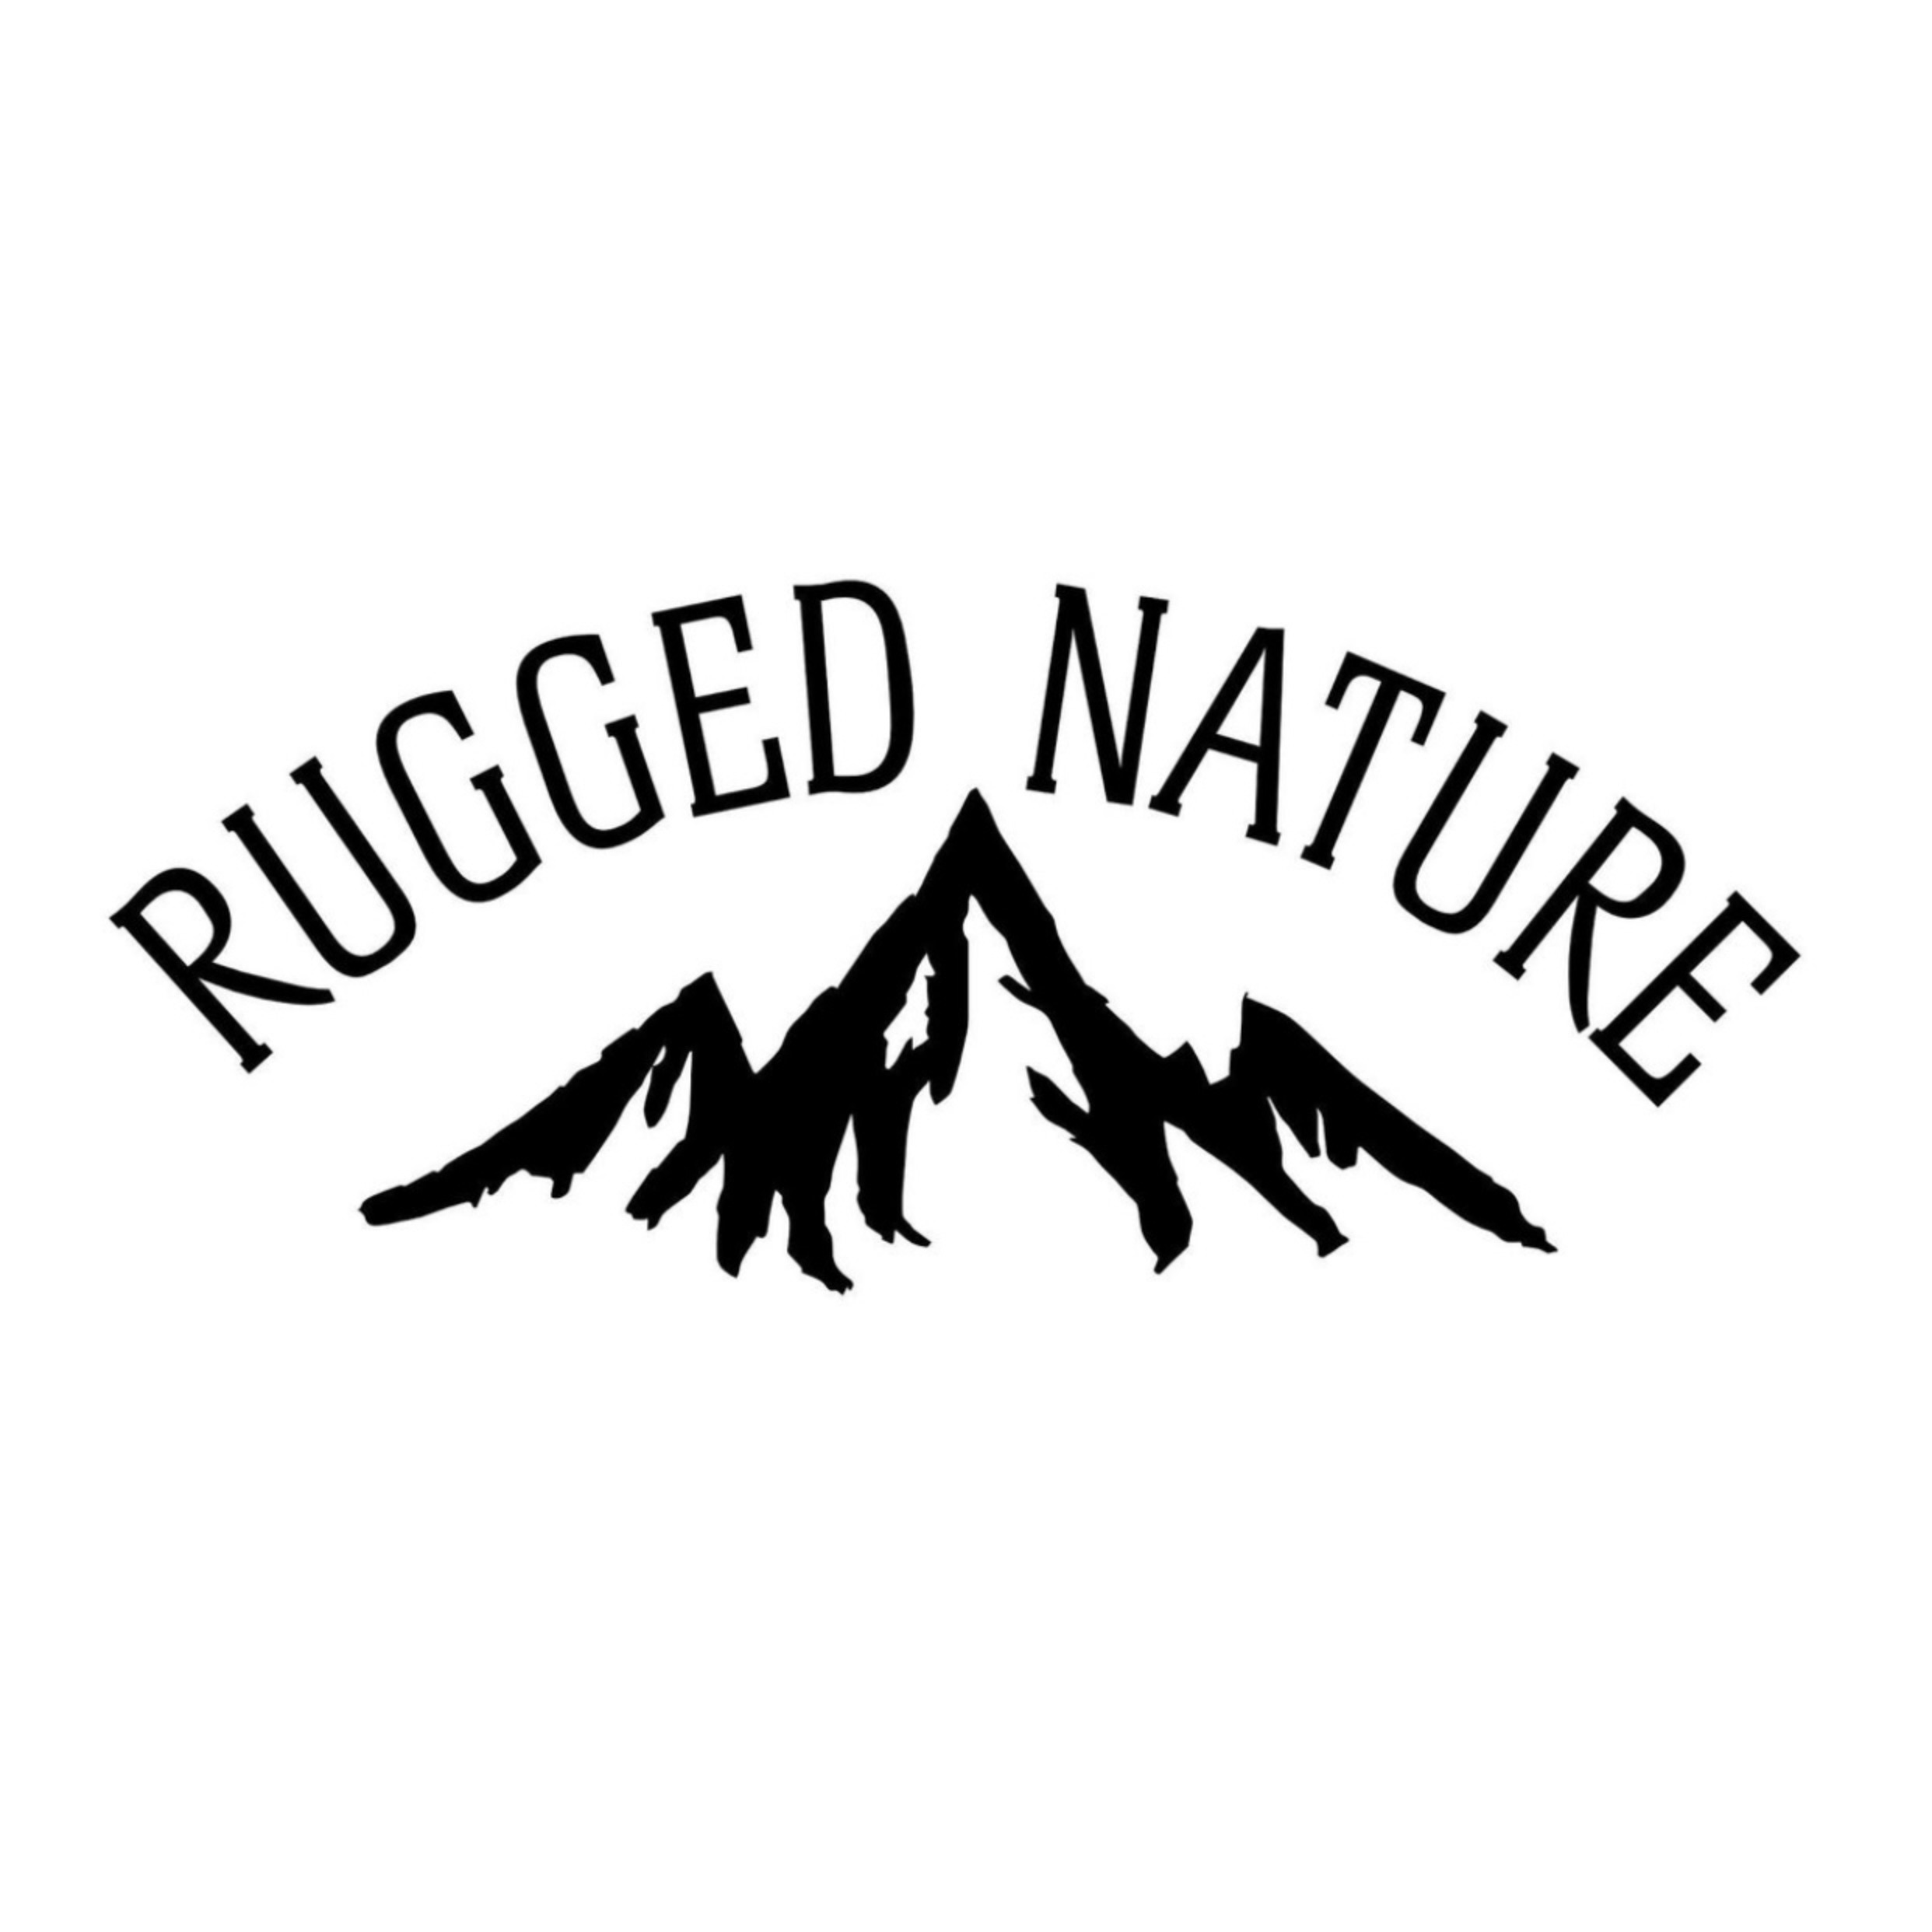 * RUGGED NATURE * Eco Conscious Grooming Products